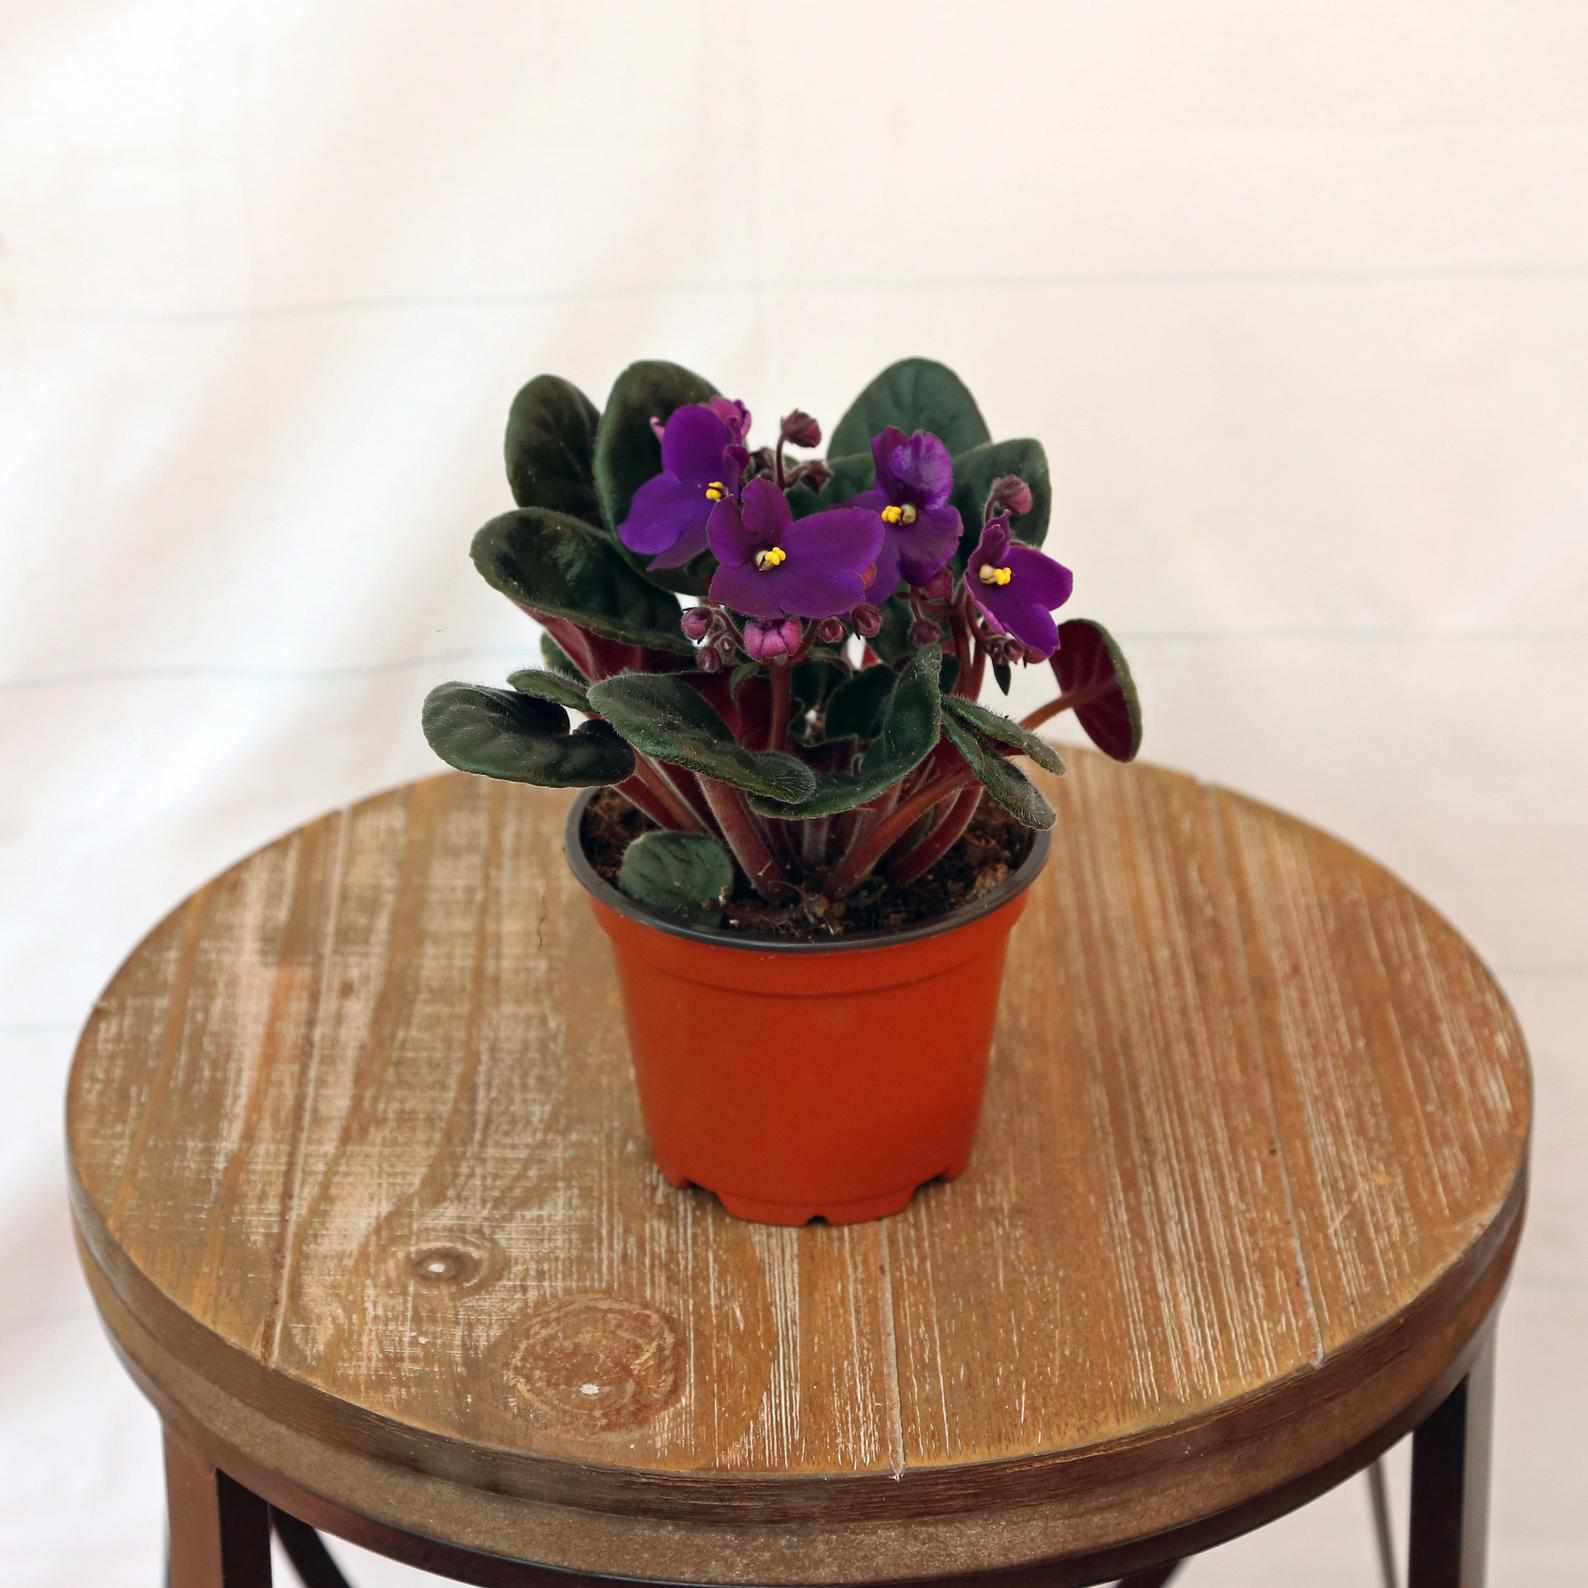 African violet in a grower's pot on a wood stool